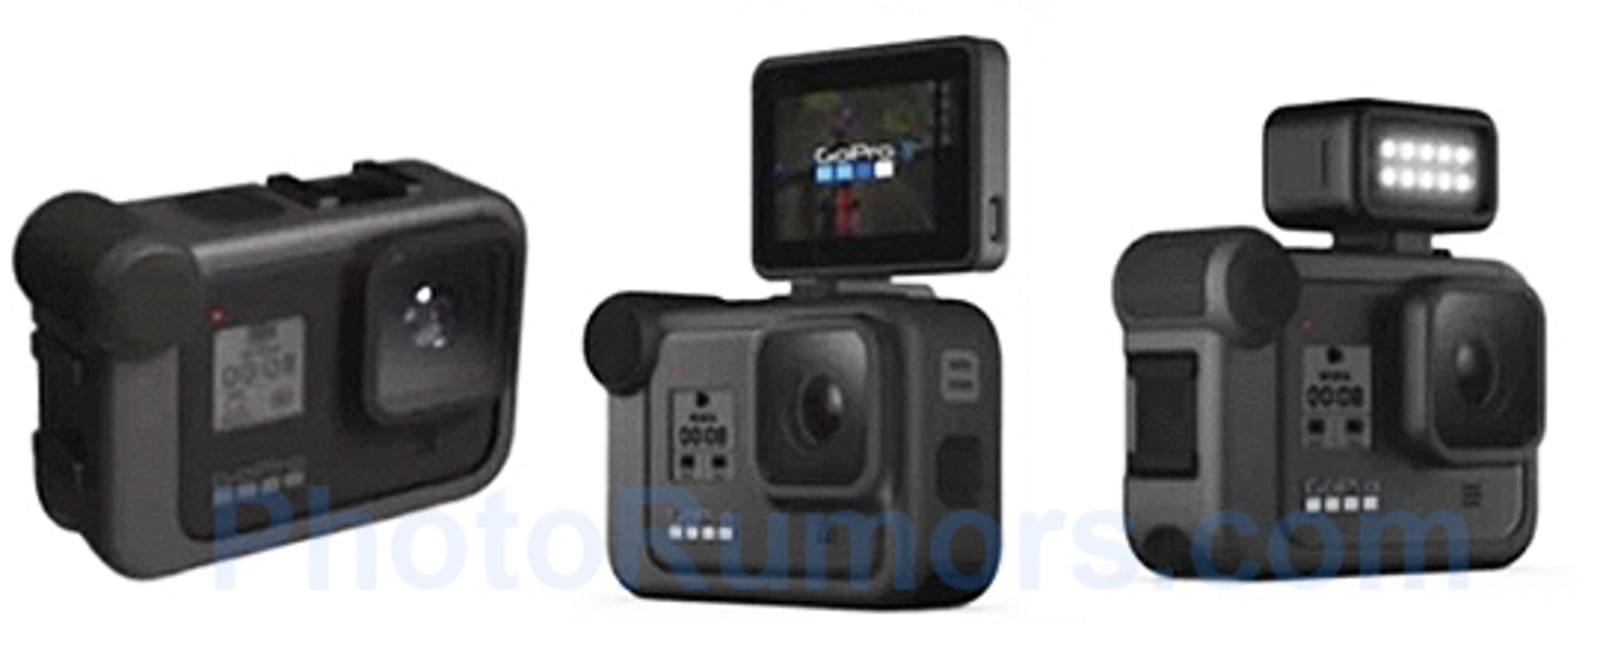 GoPro Hero 8 and Max 360 cameras surface in leaks